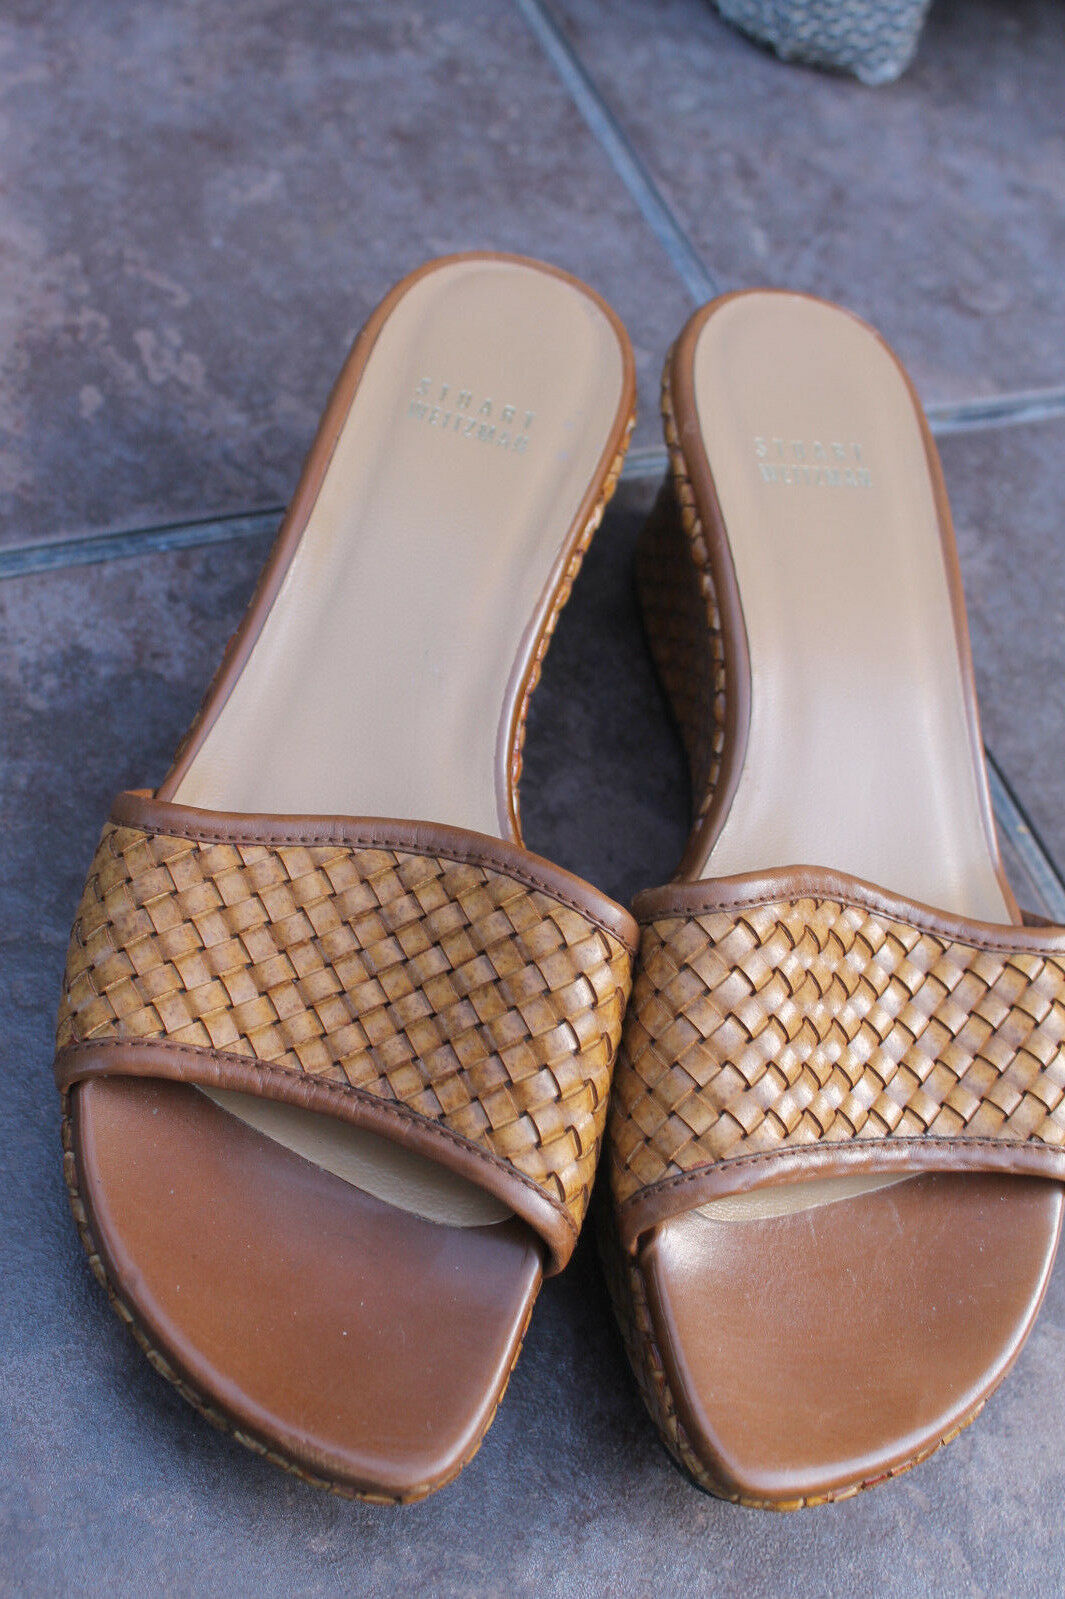 Stuart Weitzman SHOES SANDALS SLIDES WEDGES  MULES BROWN Weave Leather Size 8.5